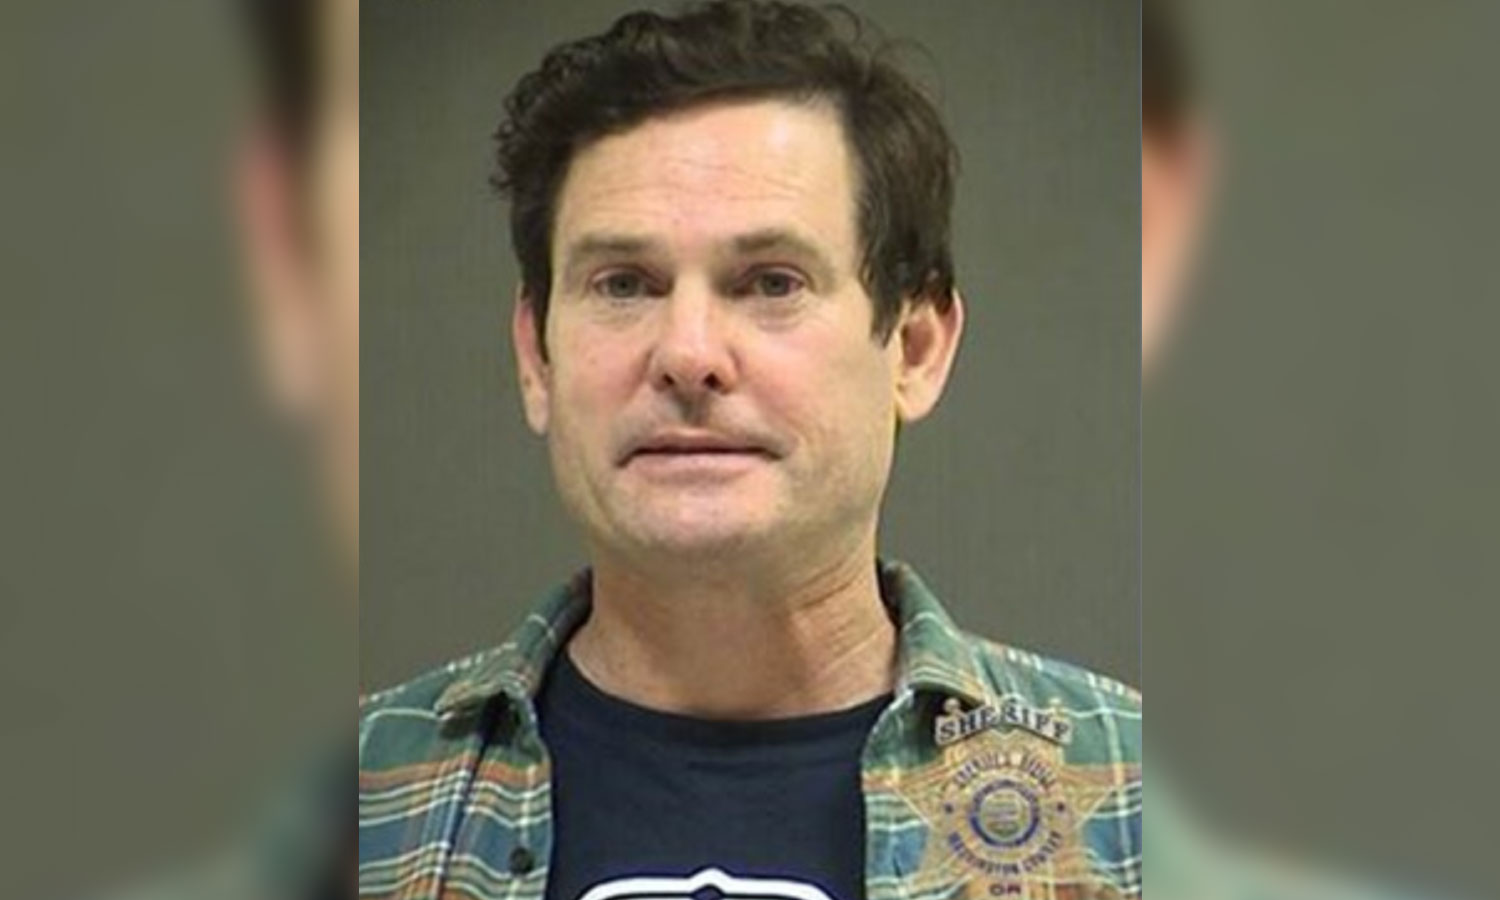 Henry Thomas Of 'E.T.' Found Passed Out At Wheel, Charged With DUI